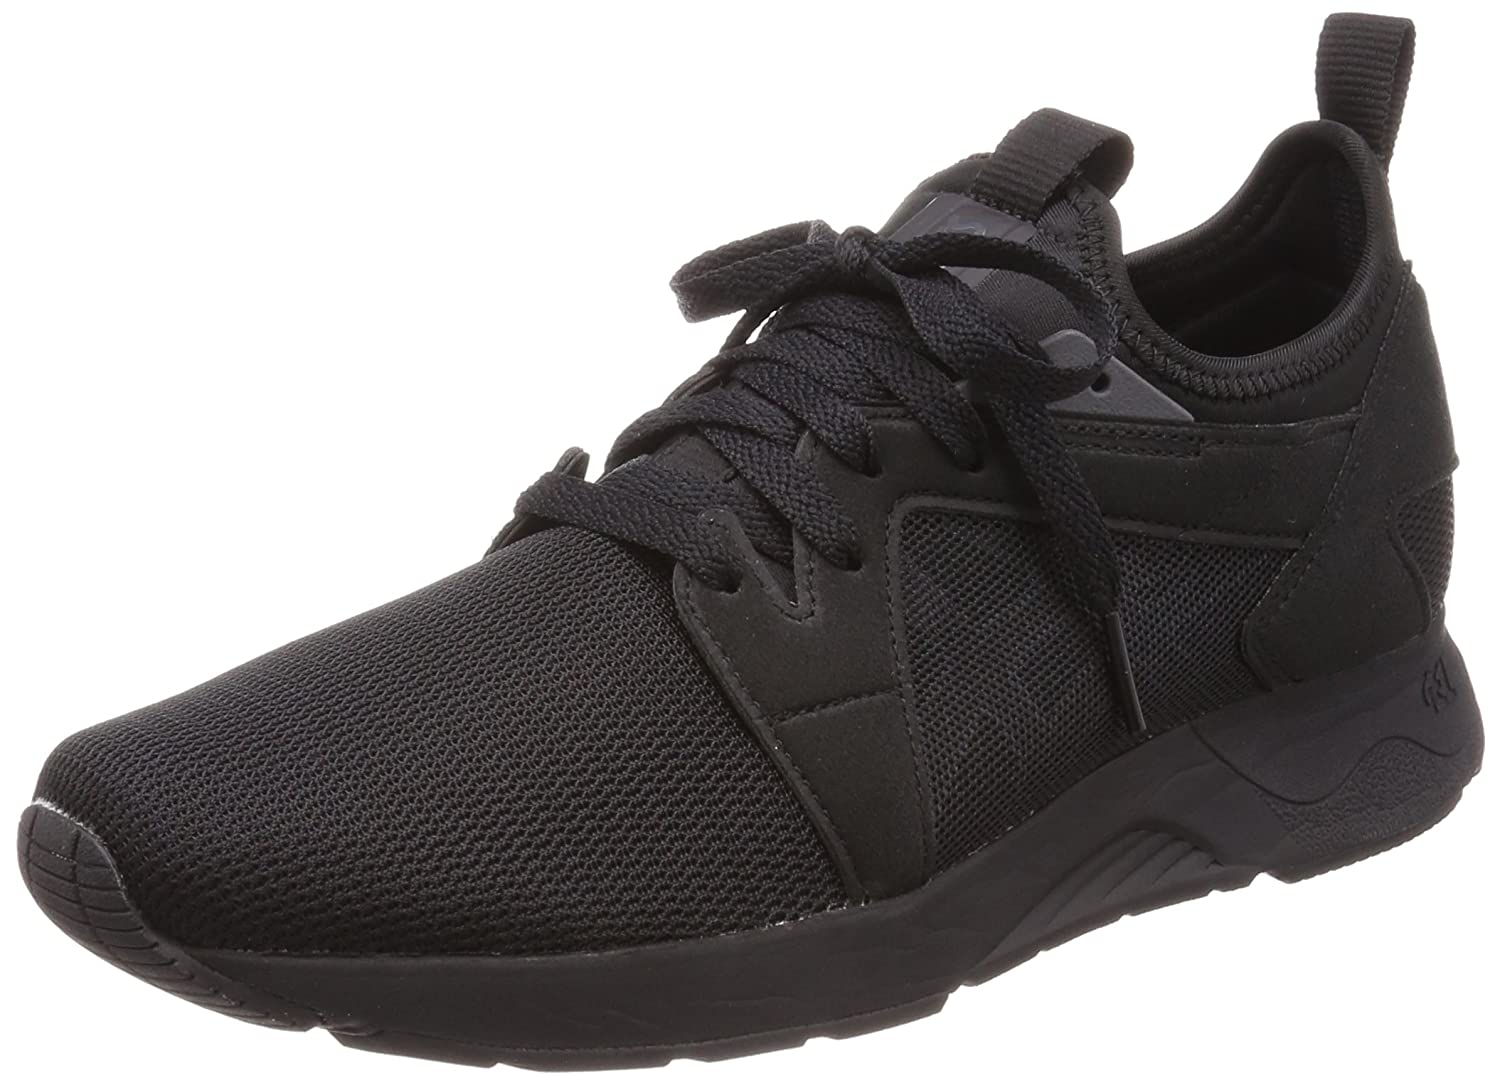 Asics Gel-Lyte Runner, Baskets Basses Homme, Noir (Black/Black 9090), 48 EU